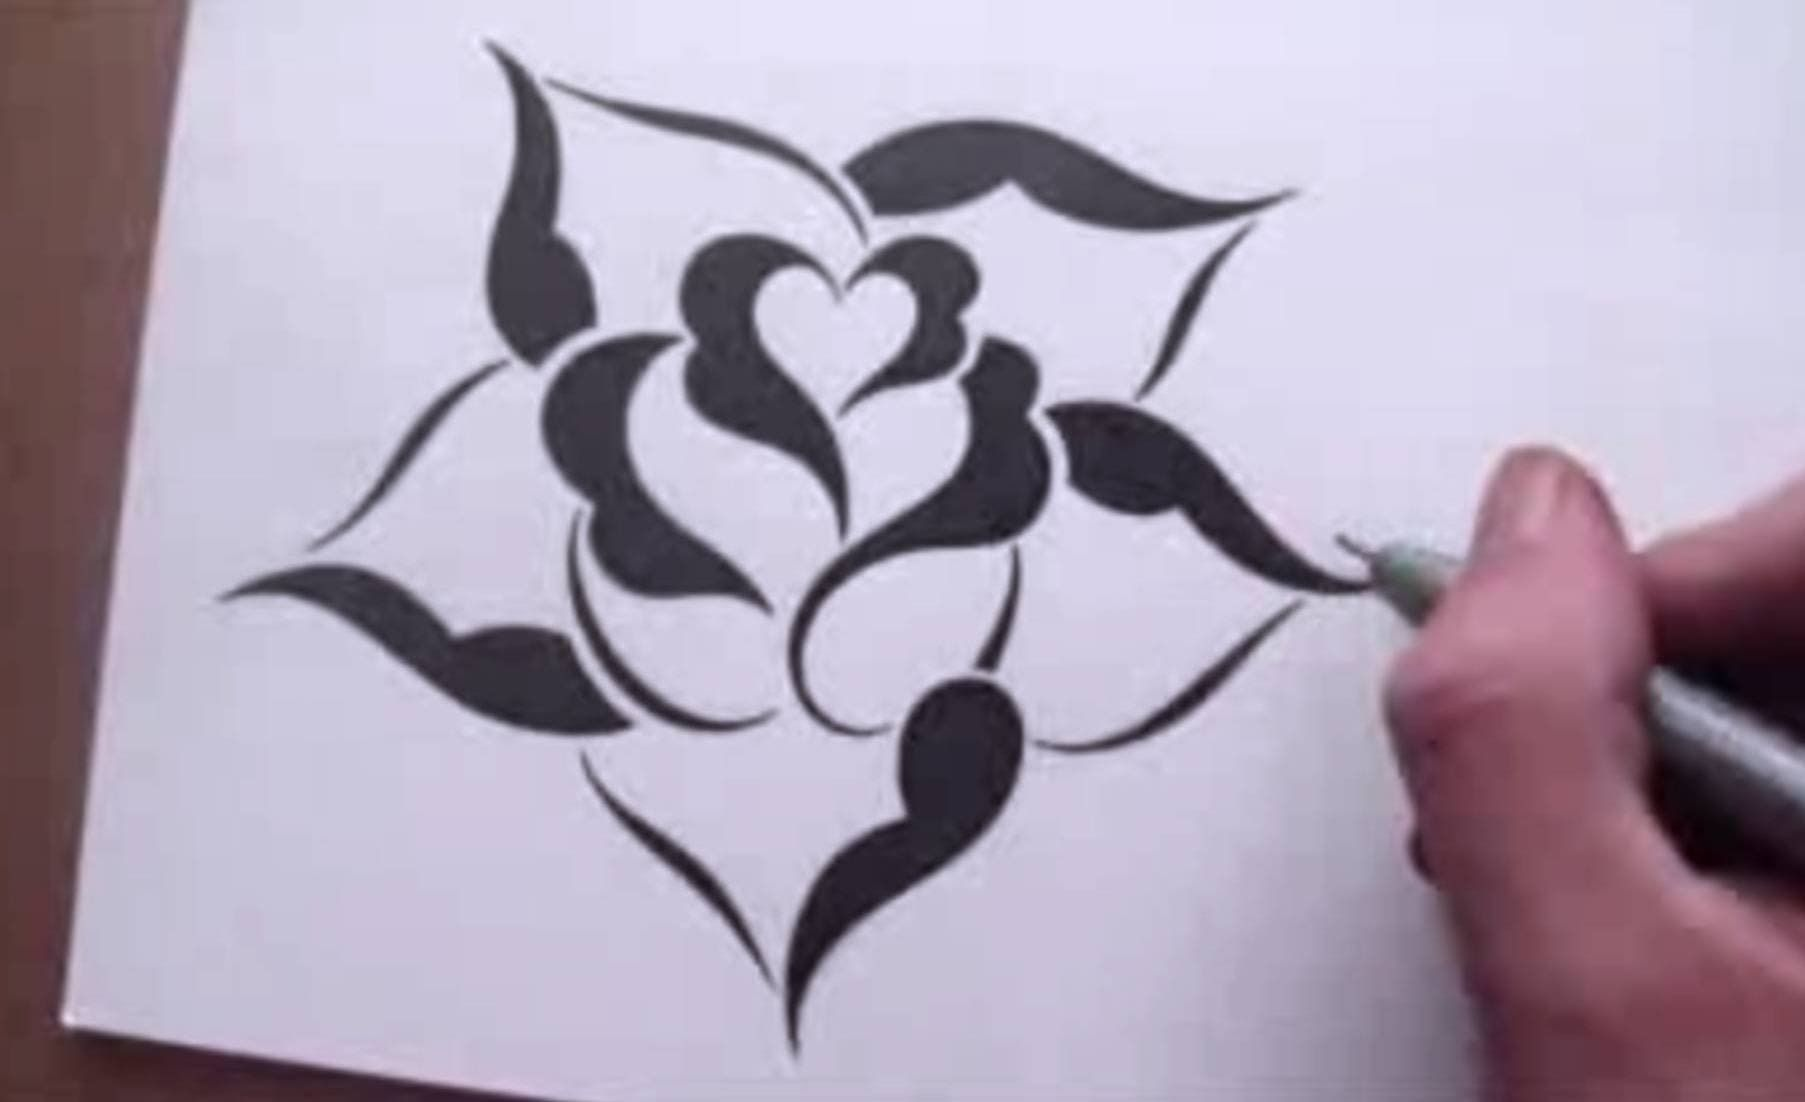 Drawing A Rose In A Simple Stencil Design Style Rose Drawing Simple Easy Heart Drawings Rose Drawing